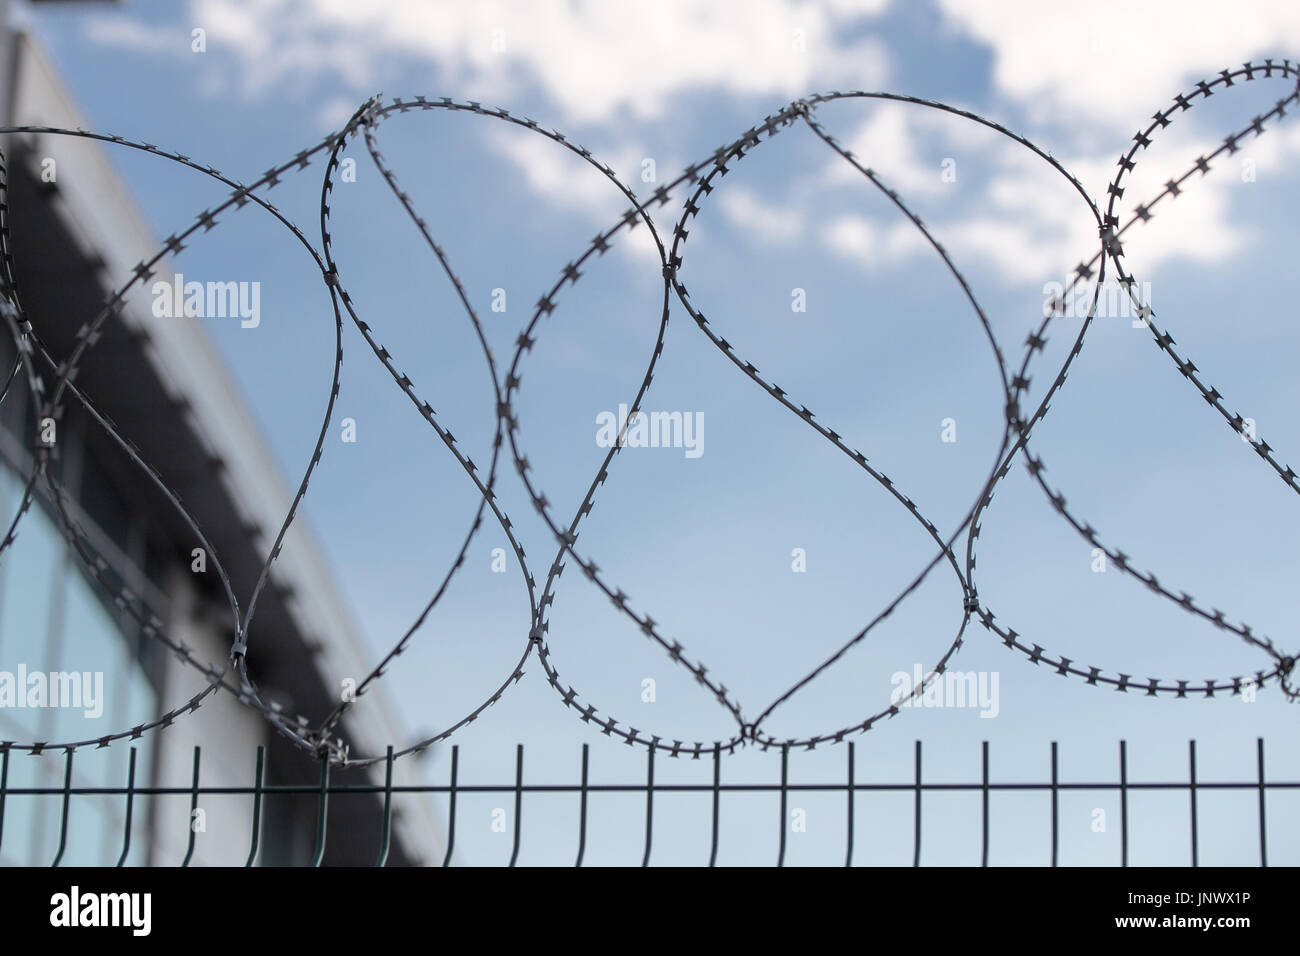 Safe protective metal fence with barbed wire. Corner of a protected building and blue sky with clouds on the background. Secured area. - Stock Image